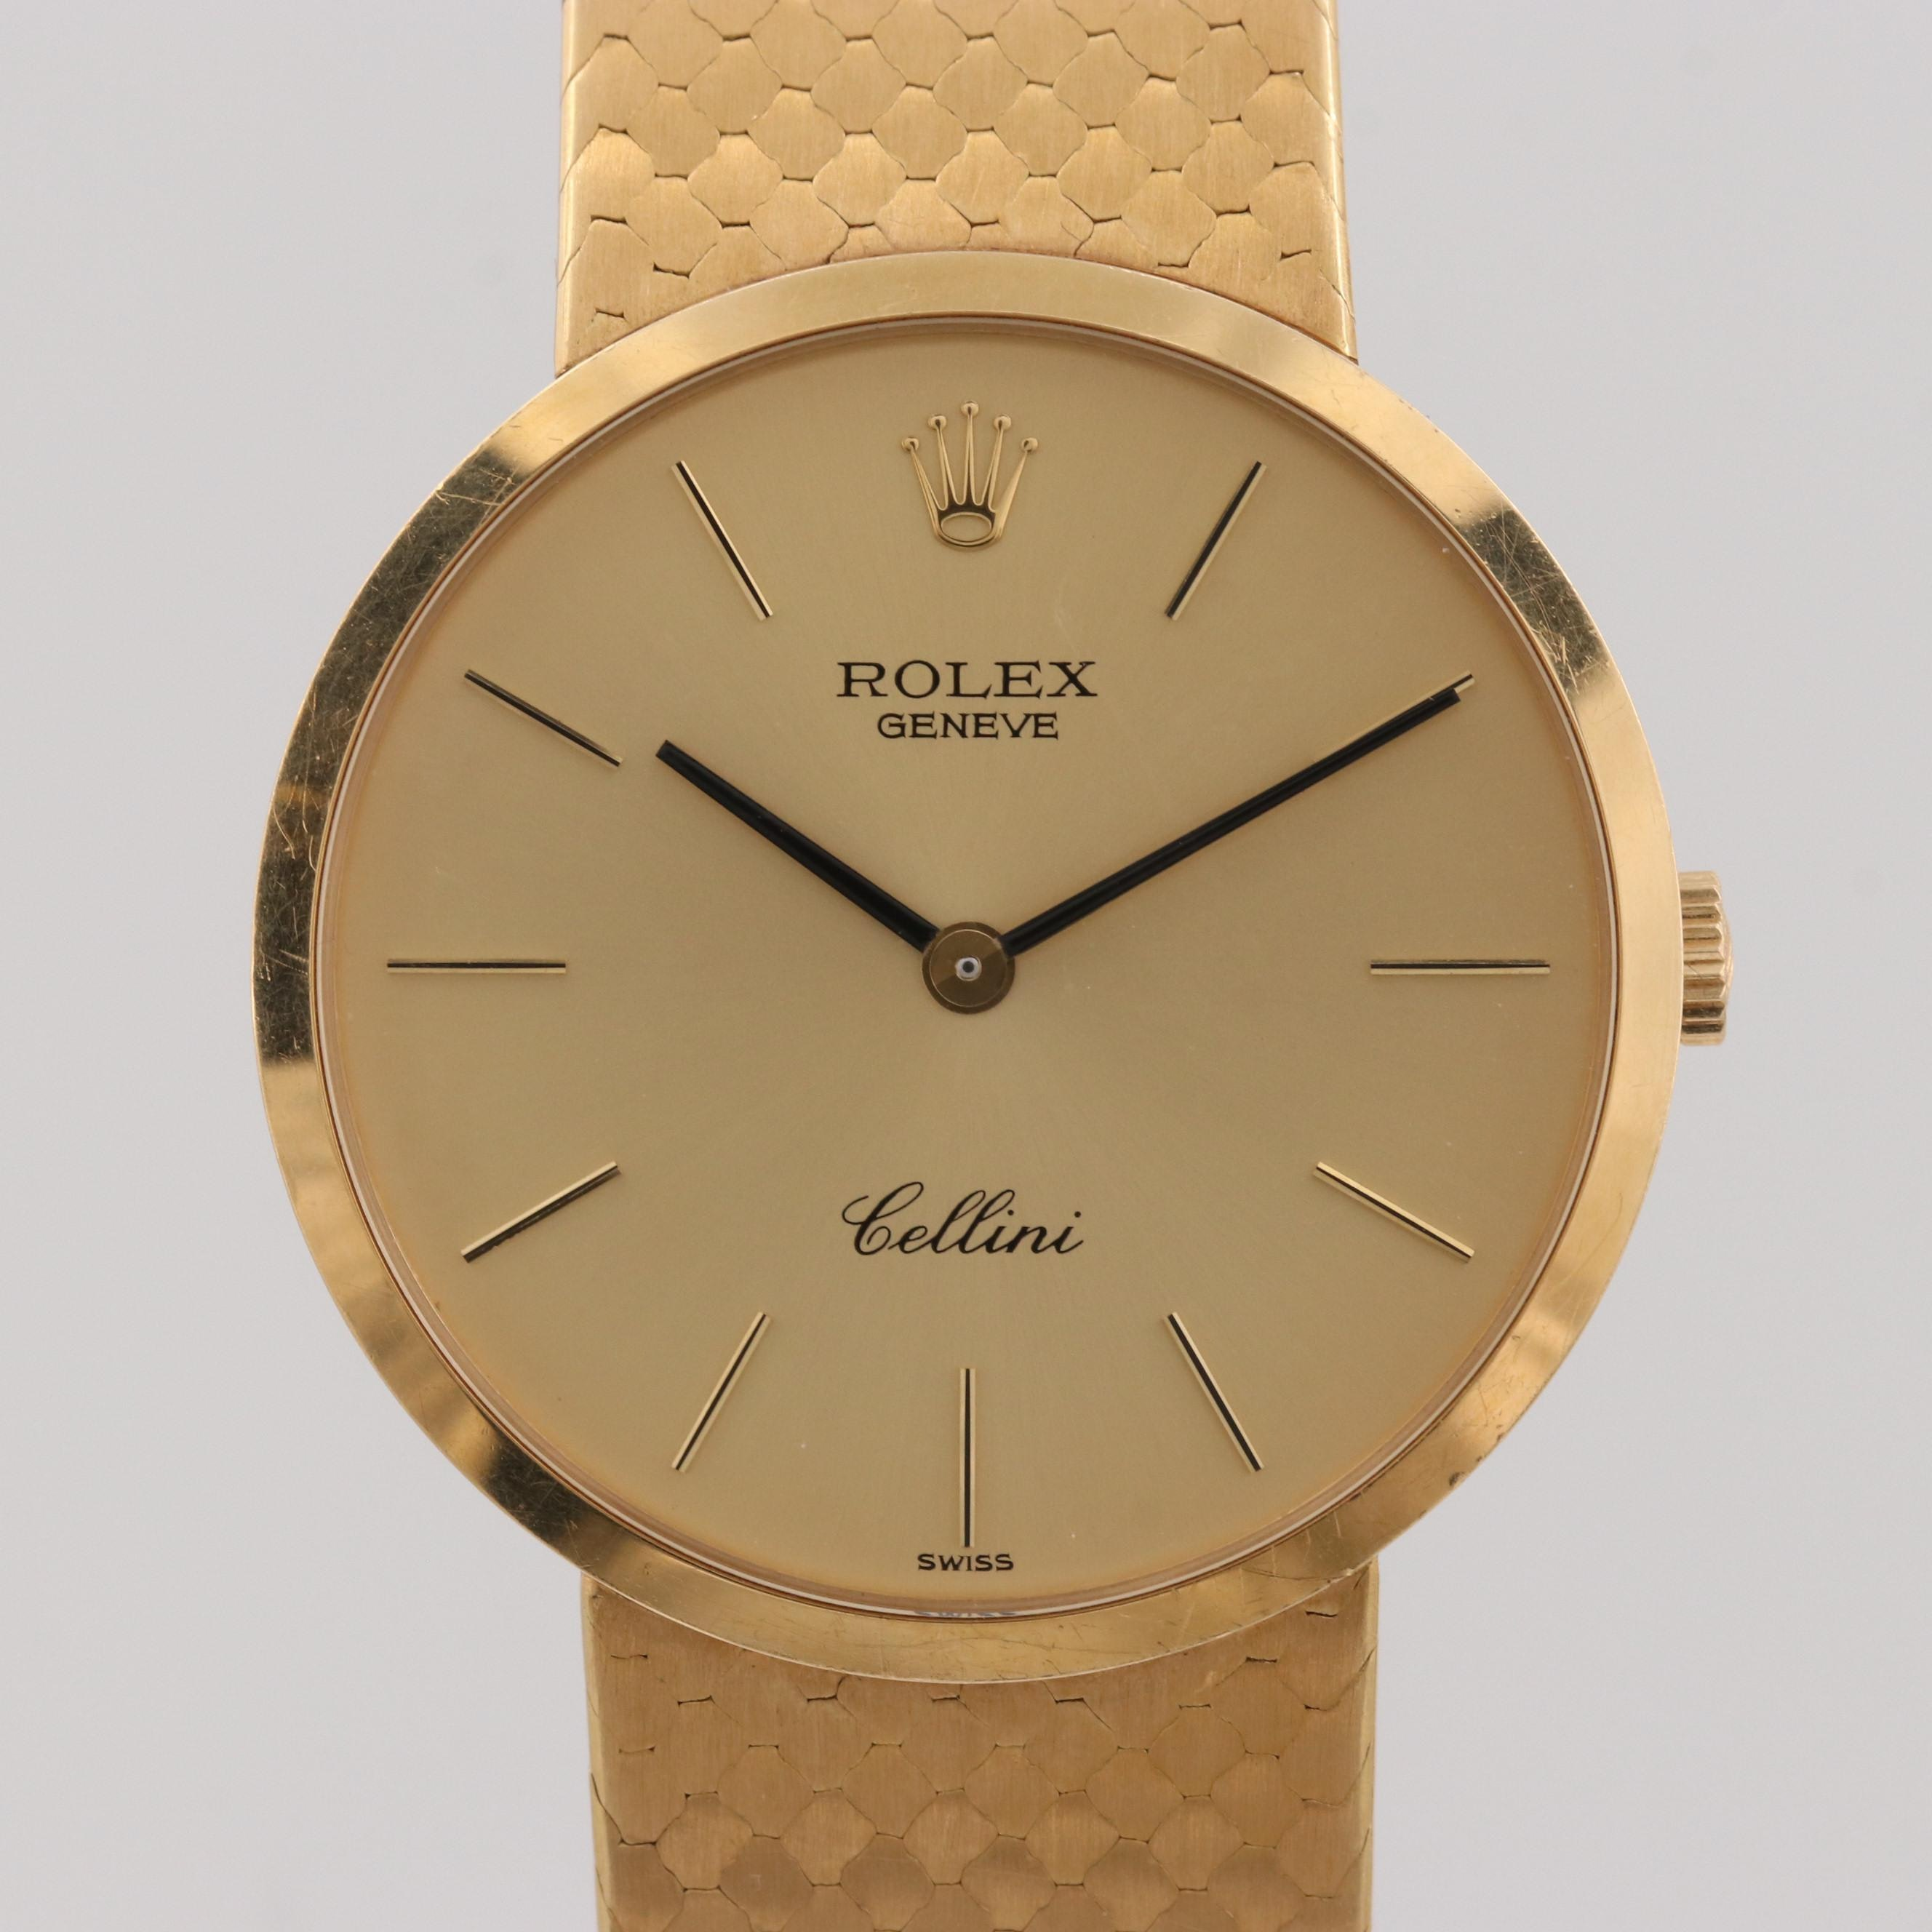 Vintage Rolex Cellini 18k Yellow Gold Stem Wind Wristwatch, 1976